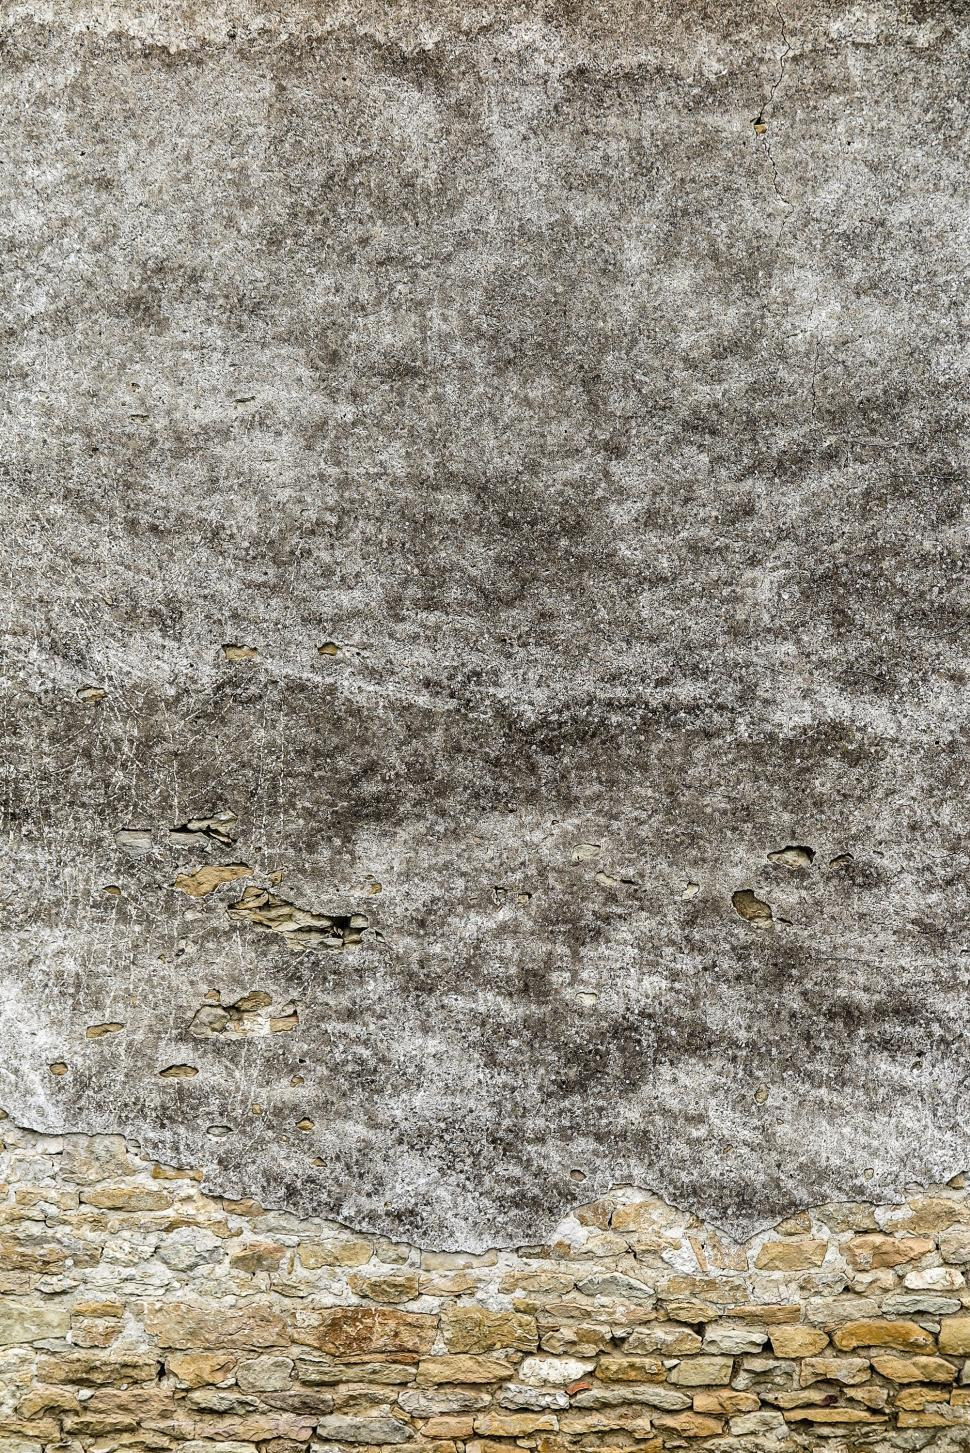 Download Free Stock HD Photo of Stucco and stone wall Online